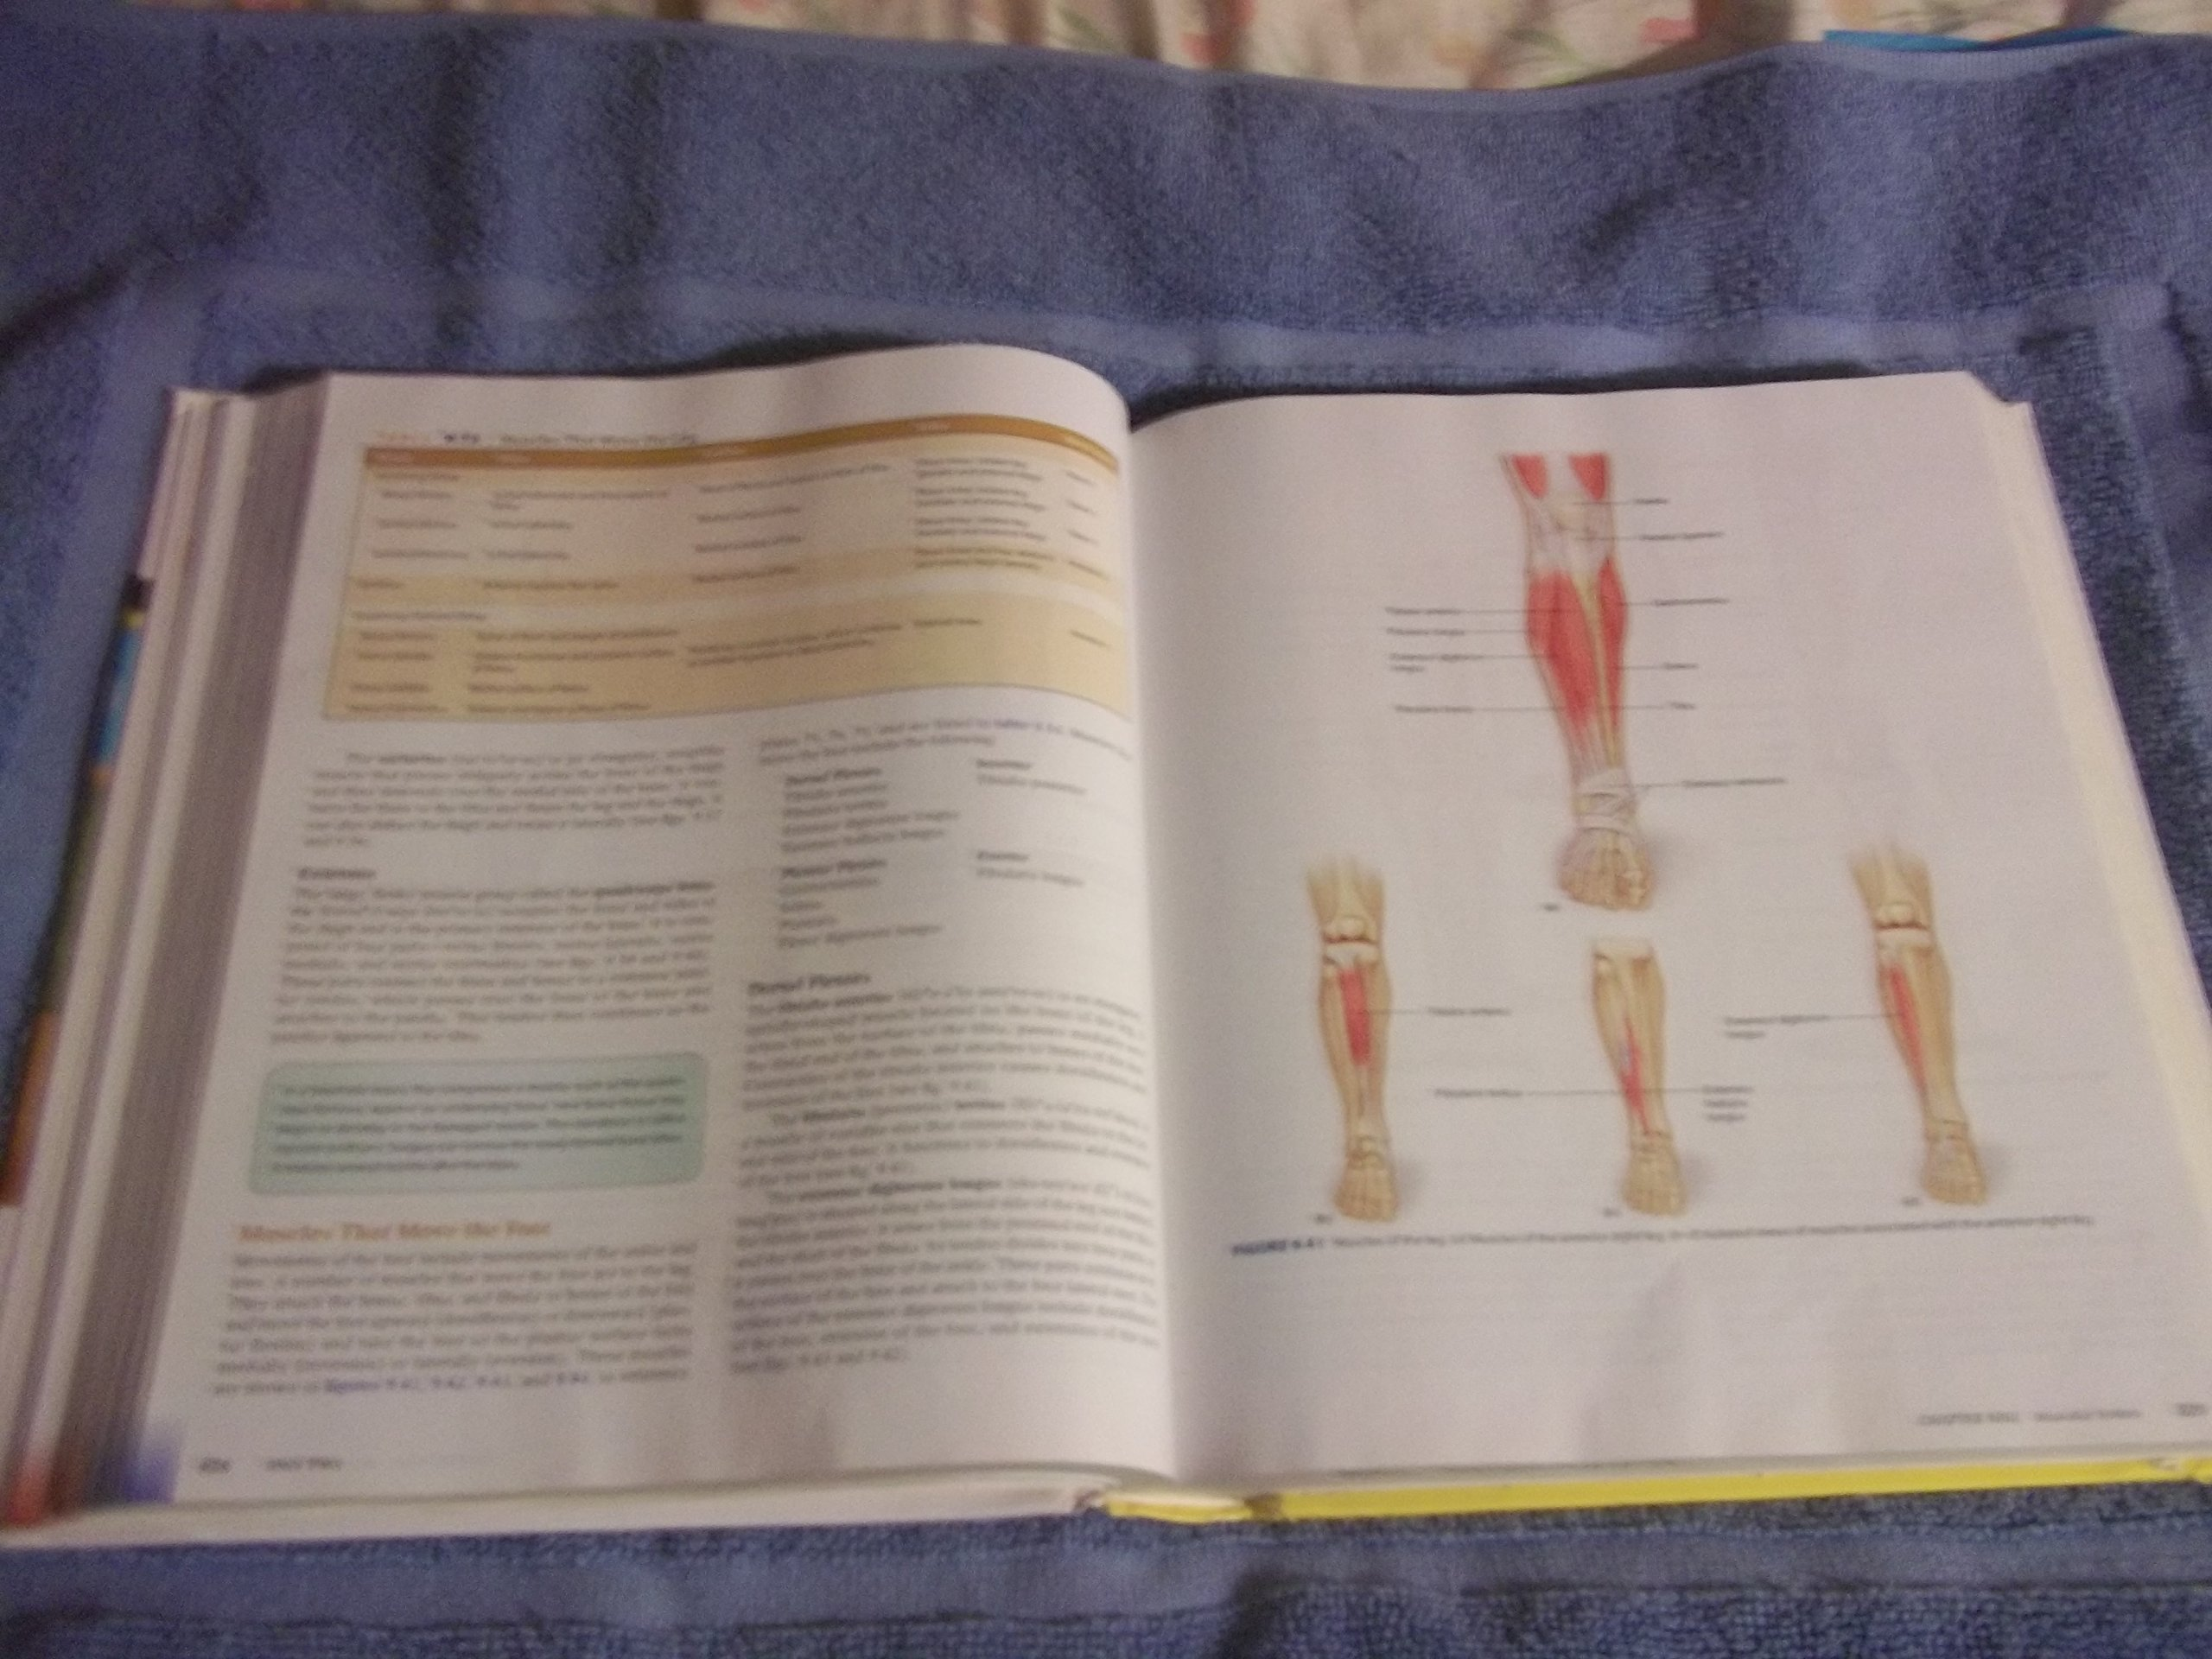 Hole\'s Human Anatomy & Physiology 12th edition by Shier, David ...